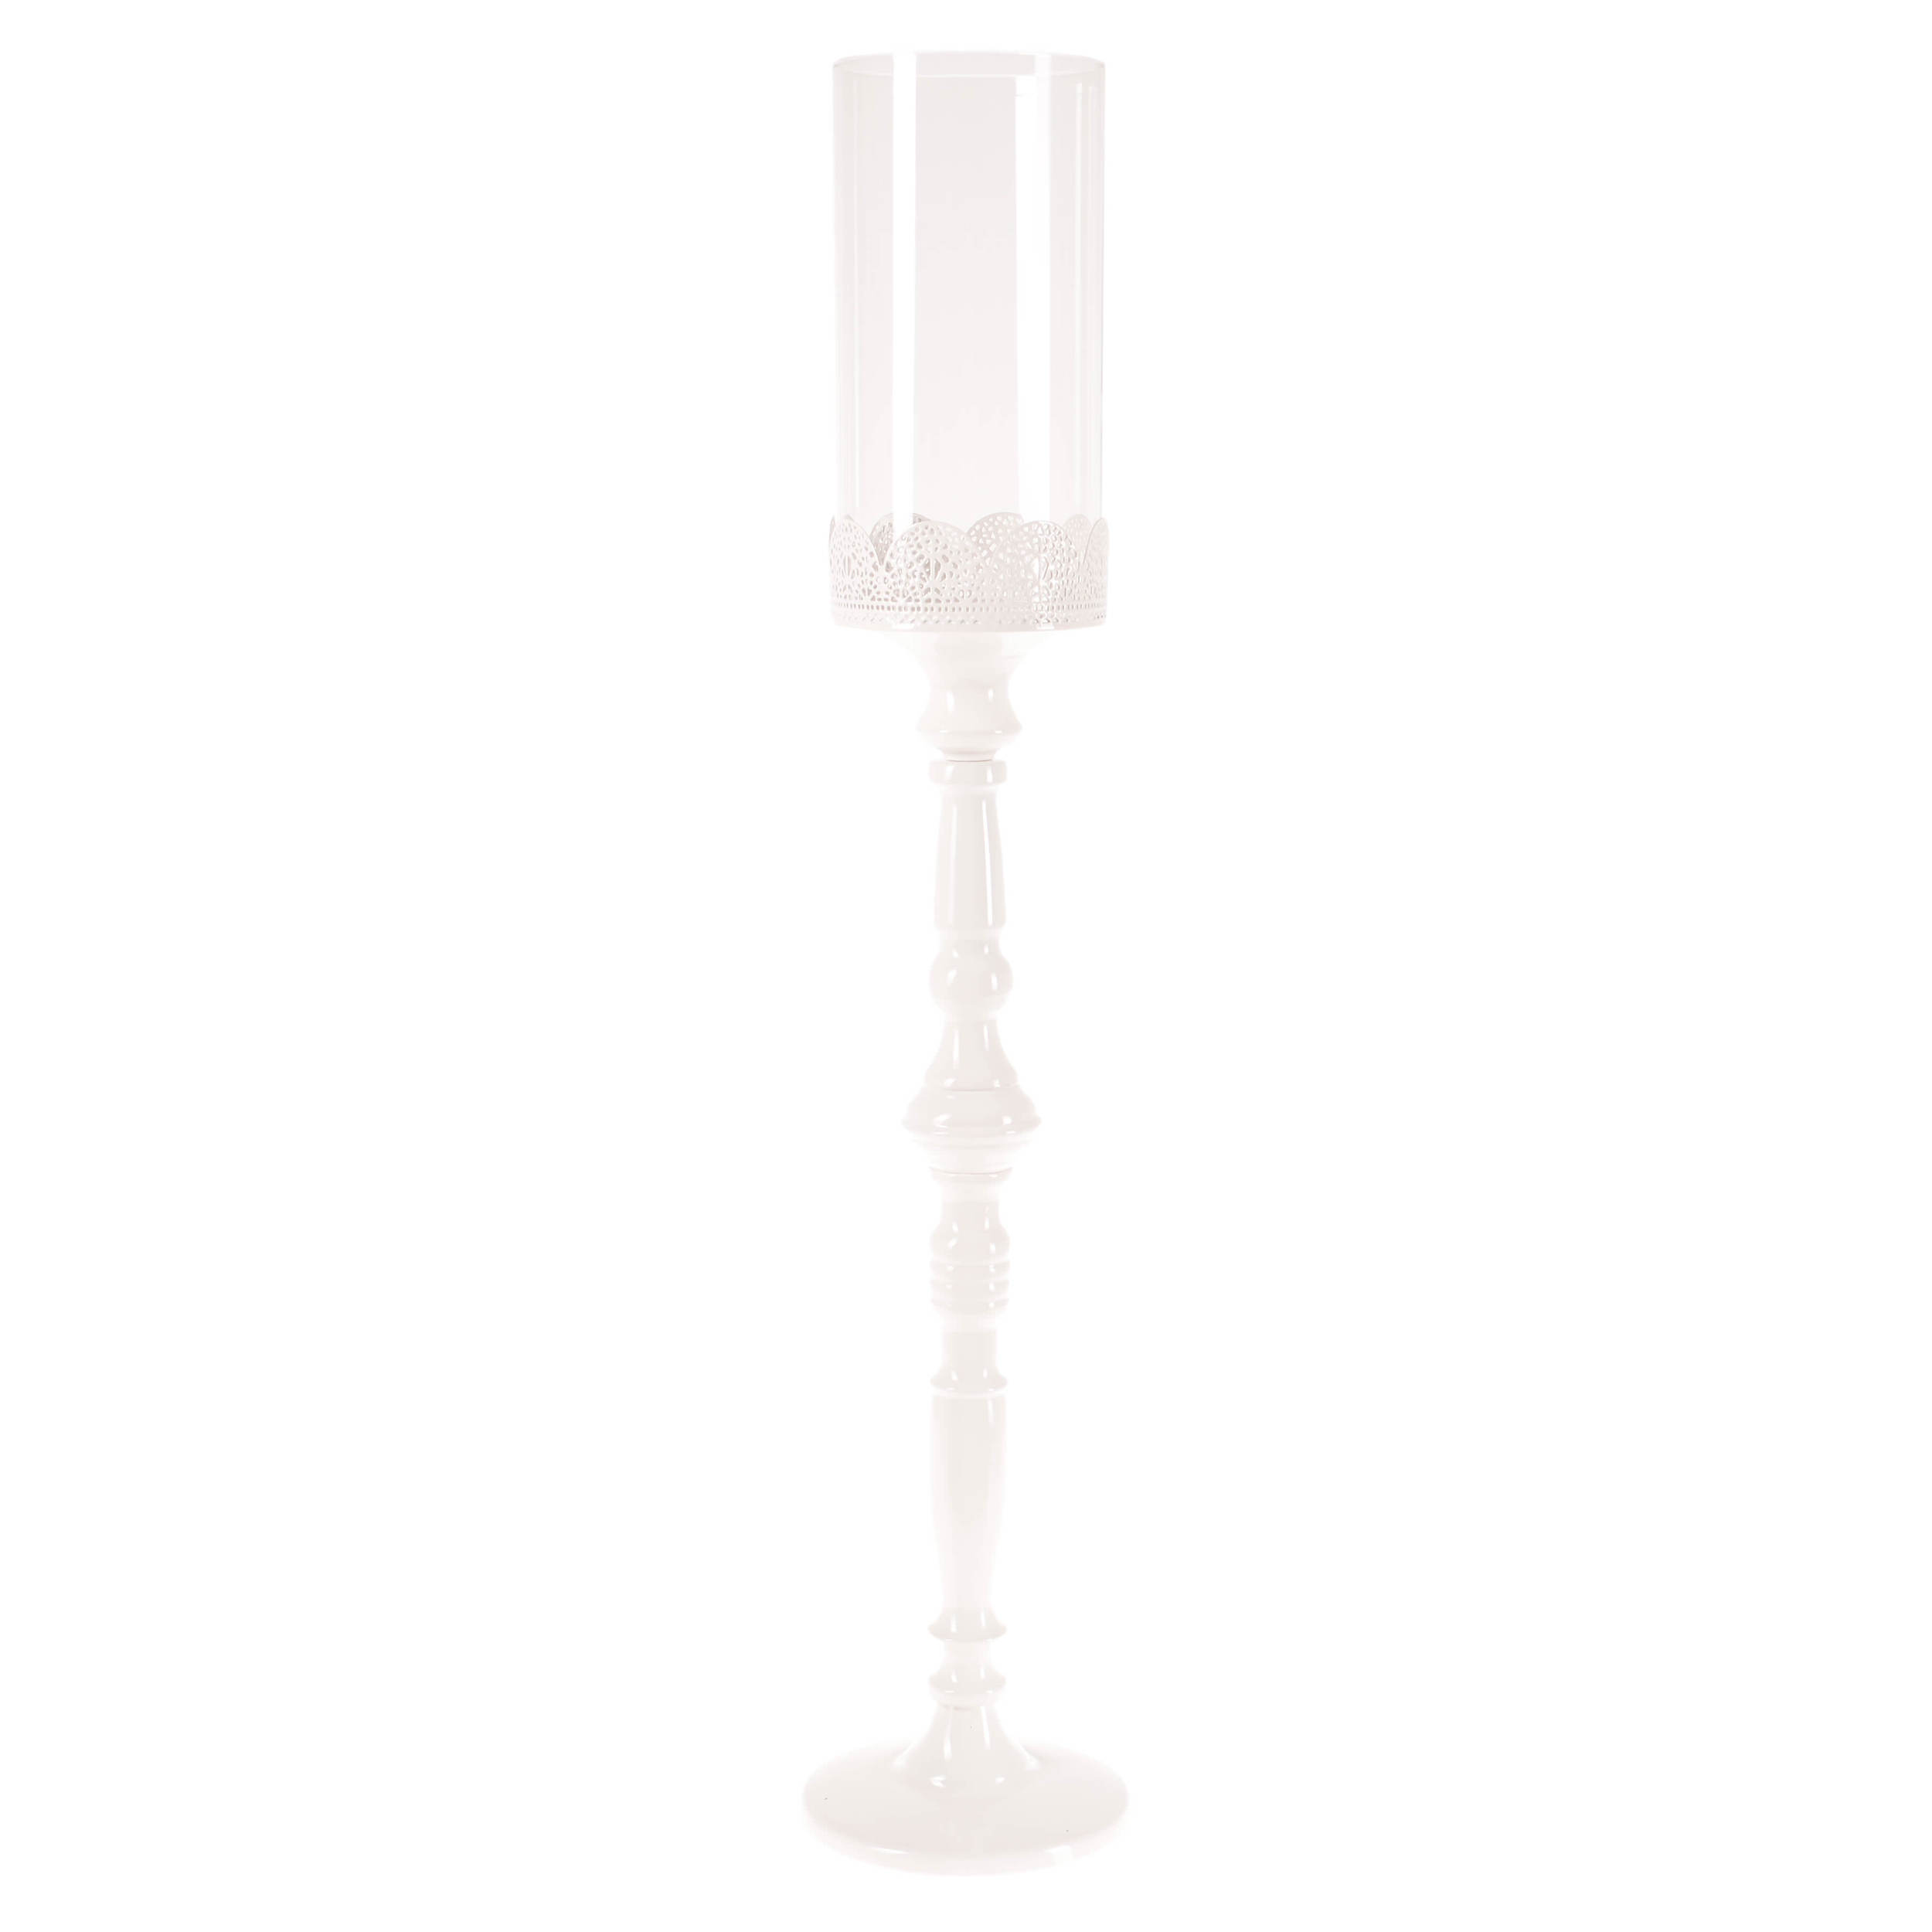 €44 METAL CANDLE HOLDER IN WHITE COLOR 13X66.5